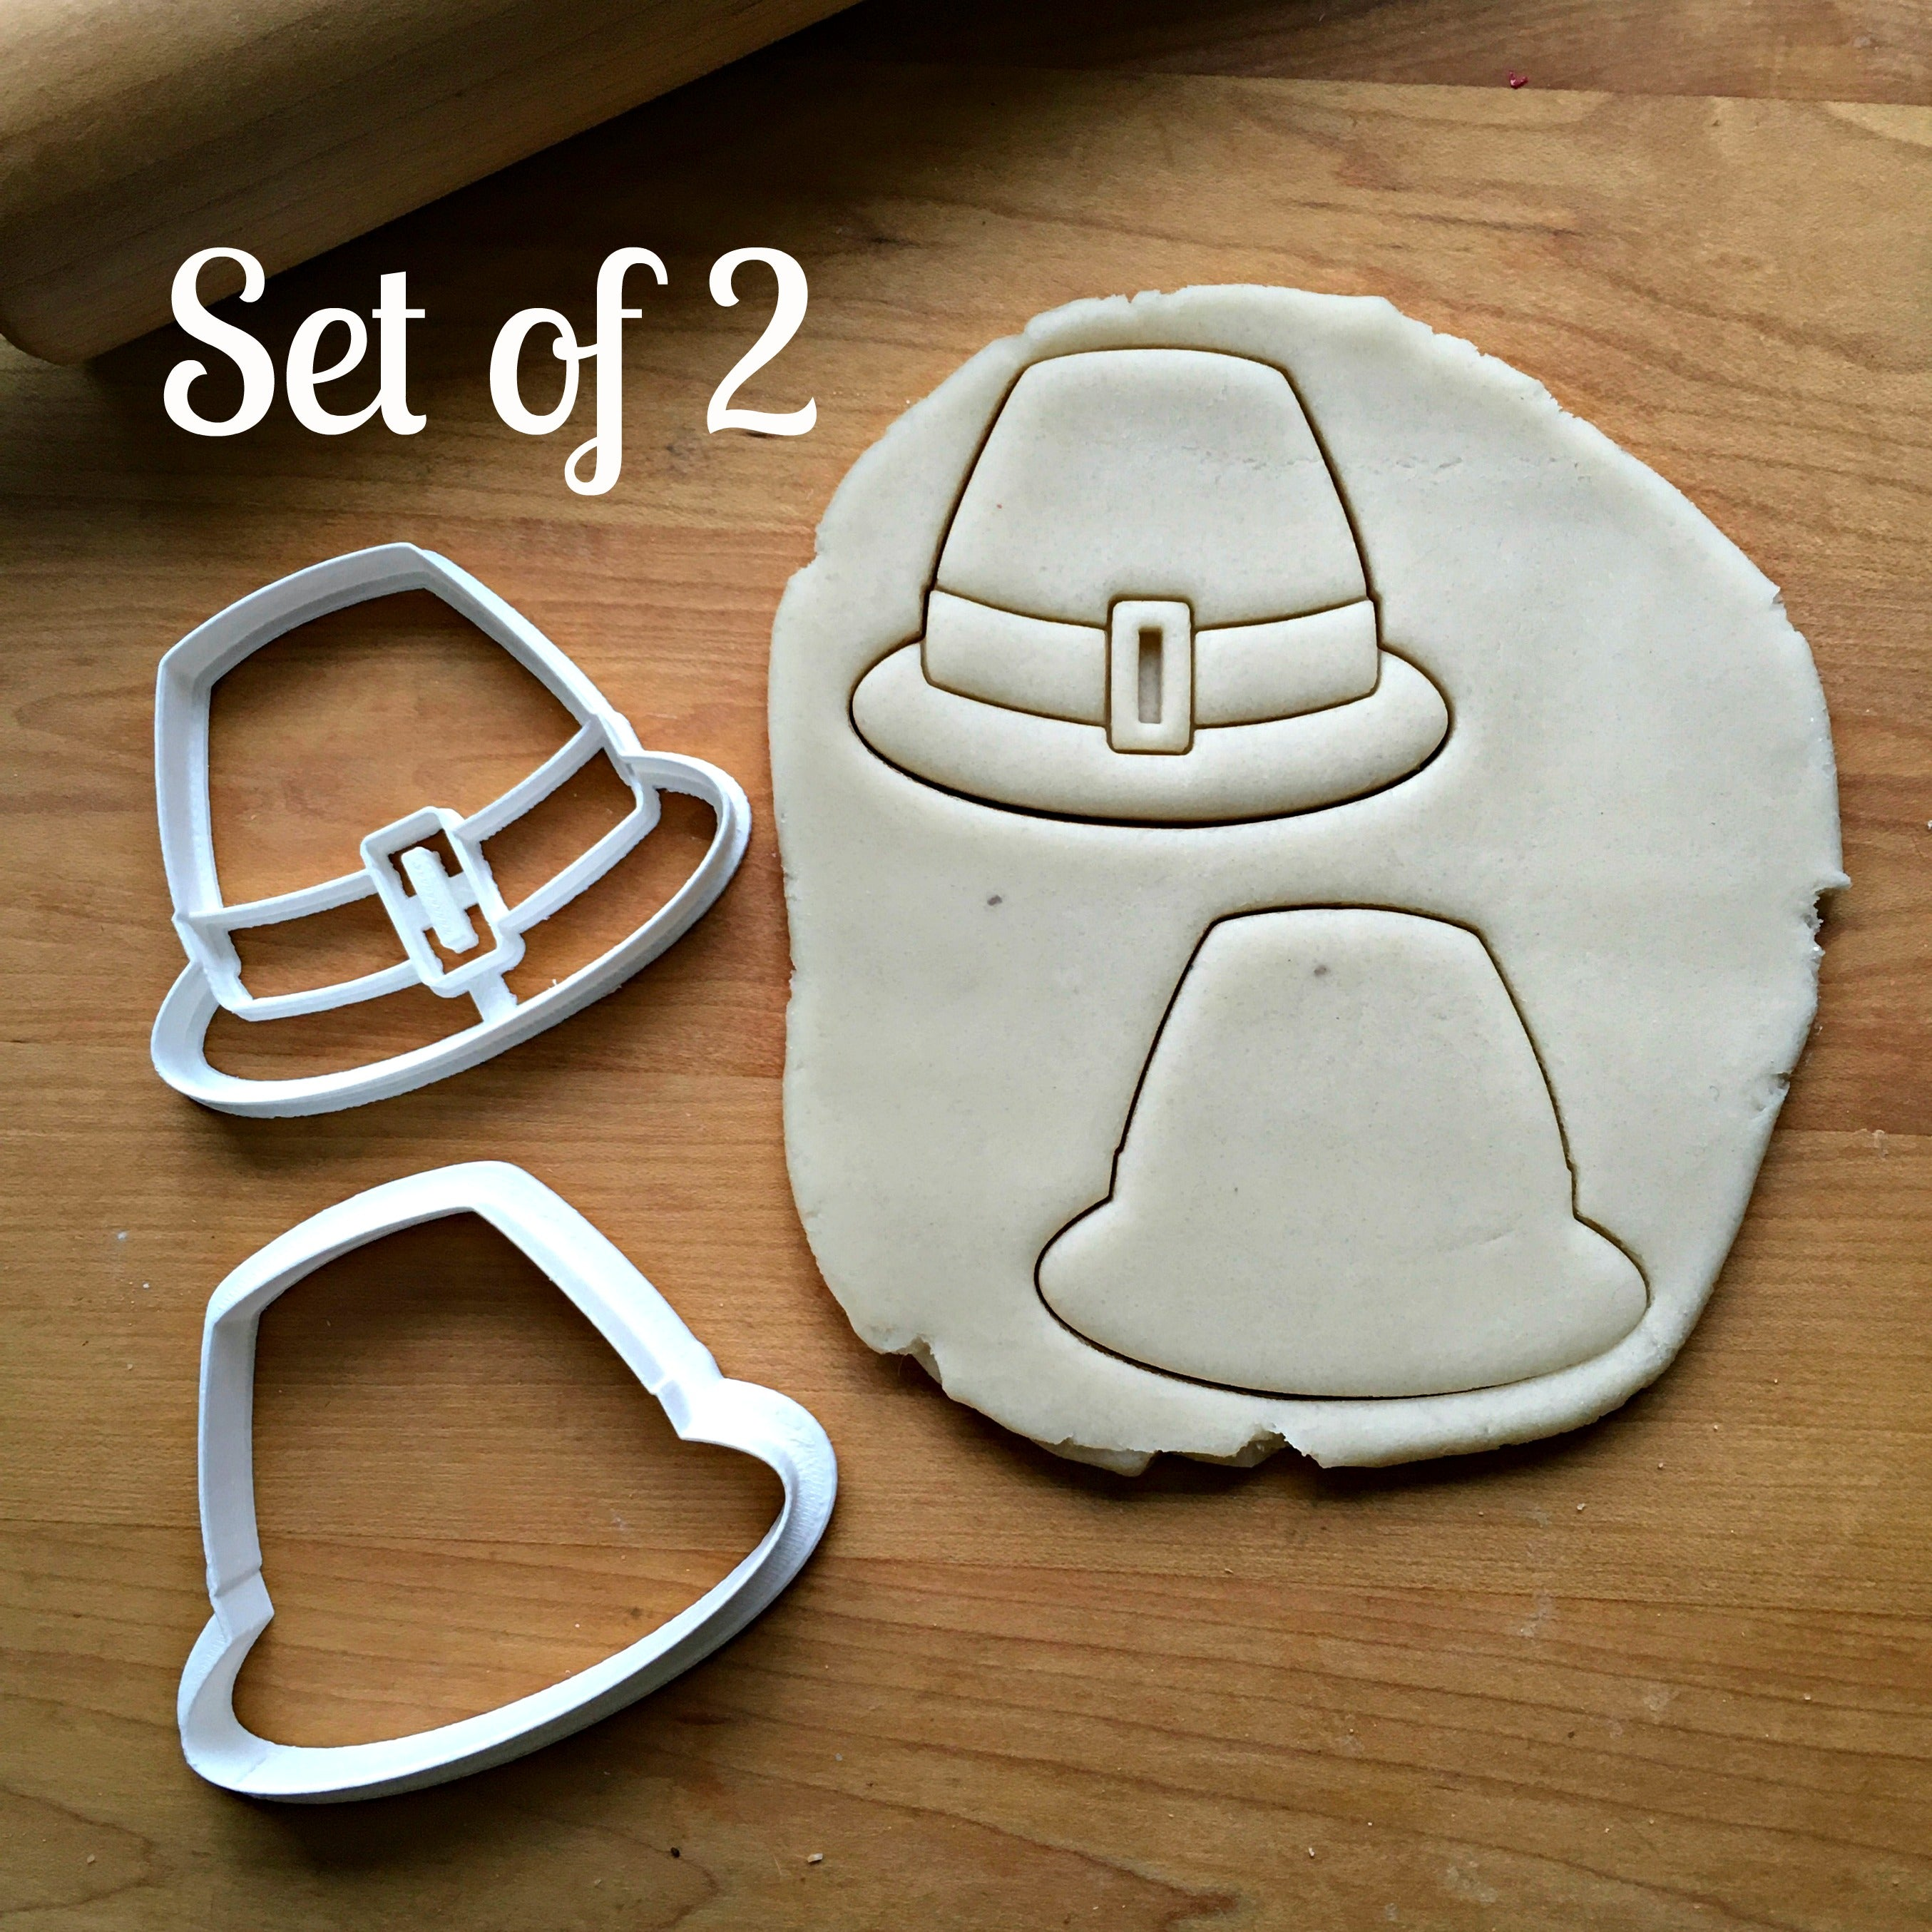 Set of 2 Leprechaun Hat Cookie Cutters/Dishwasher Safe